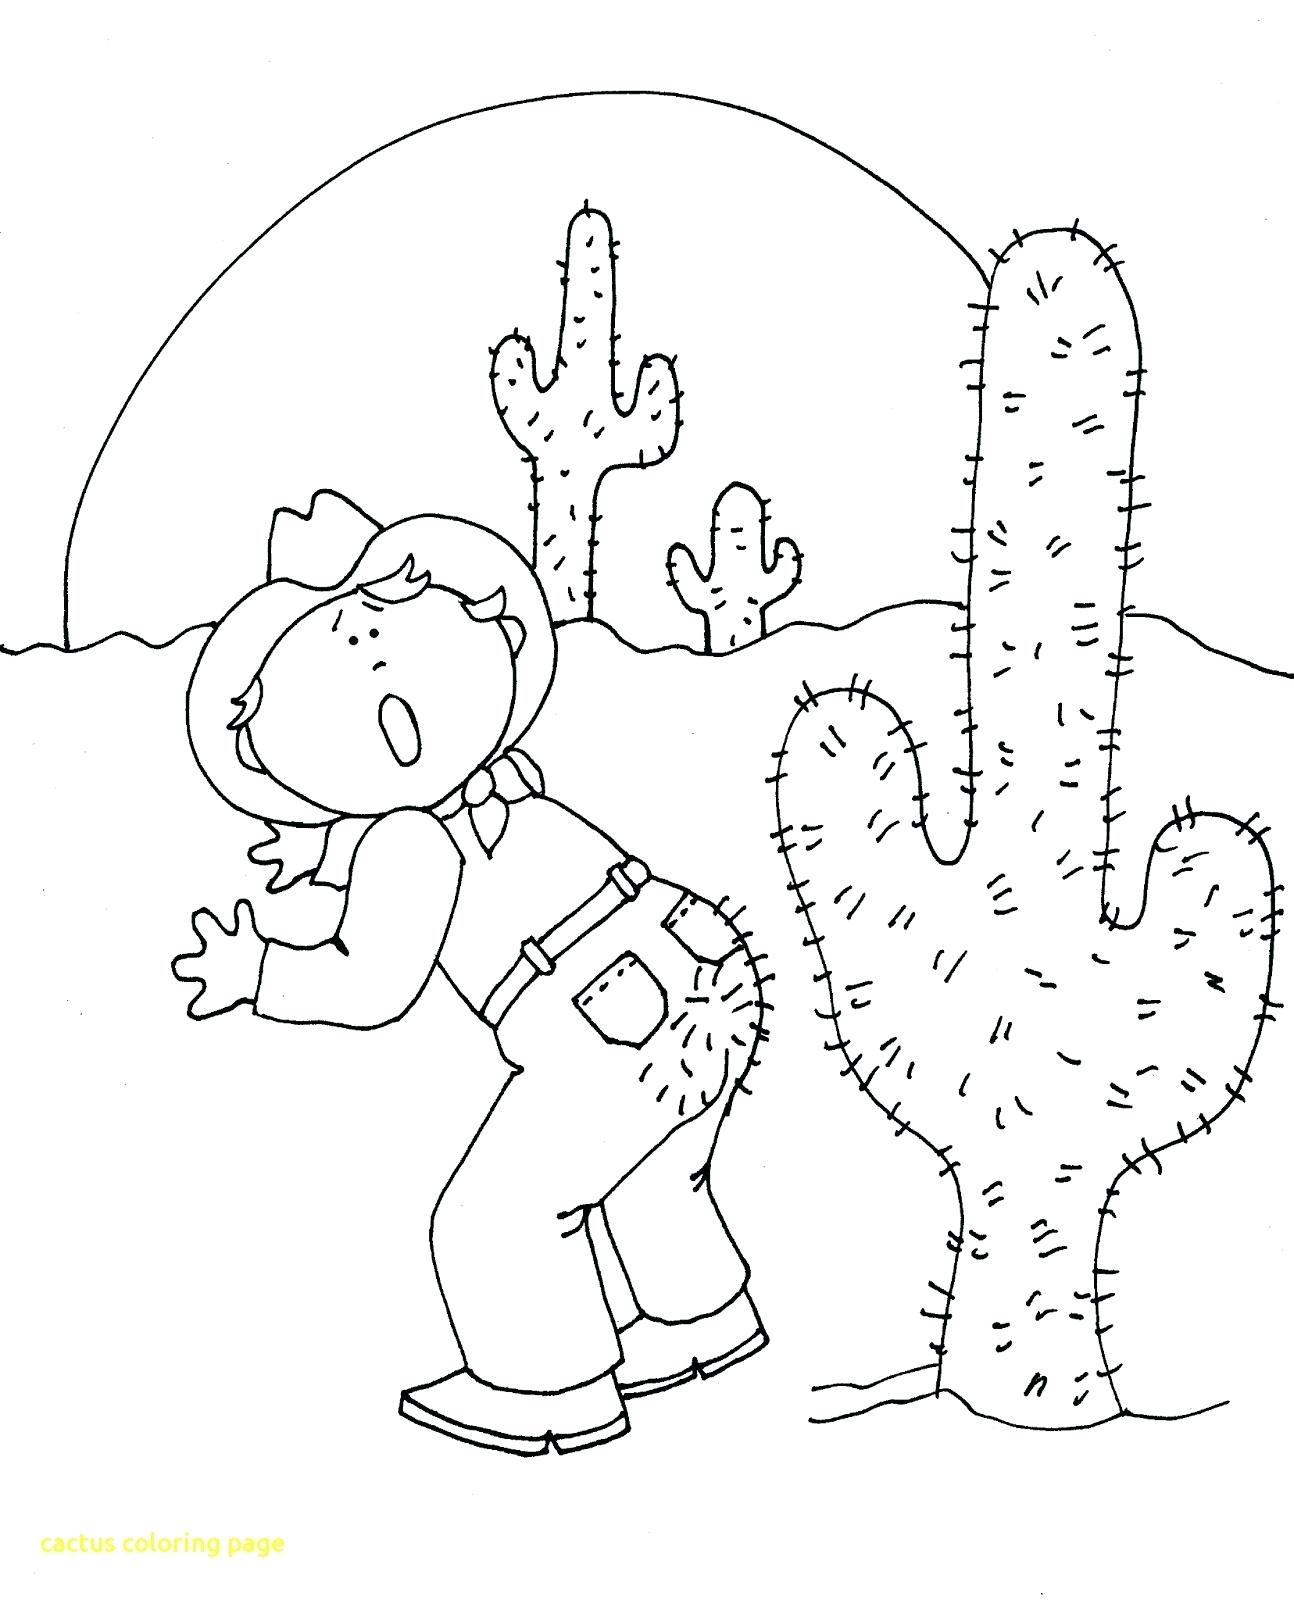 Prickly Pear Cactus Drawing at GetDrawings.com | Free for personal ...